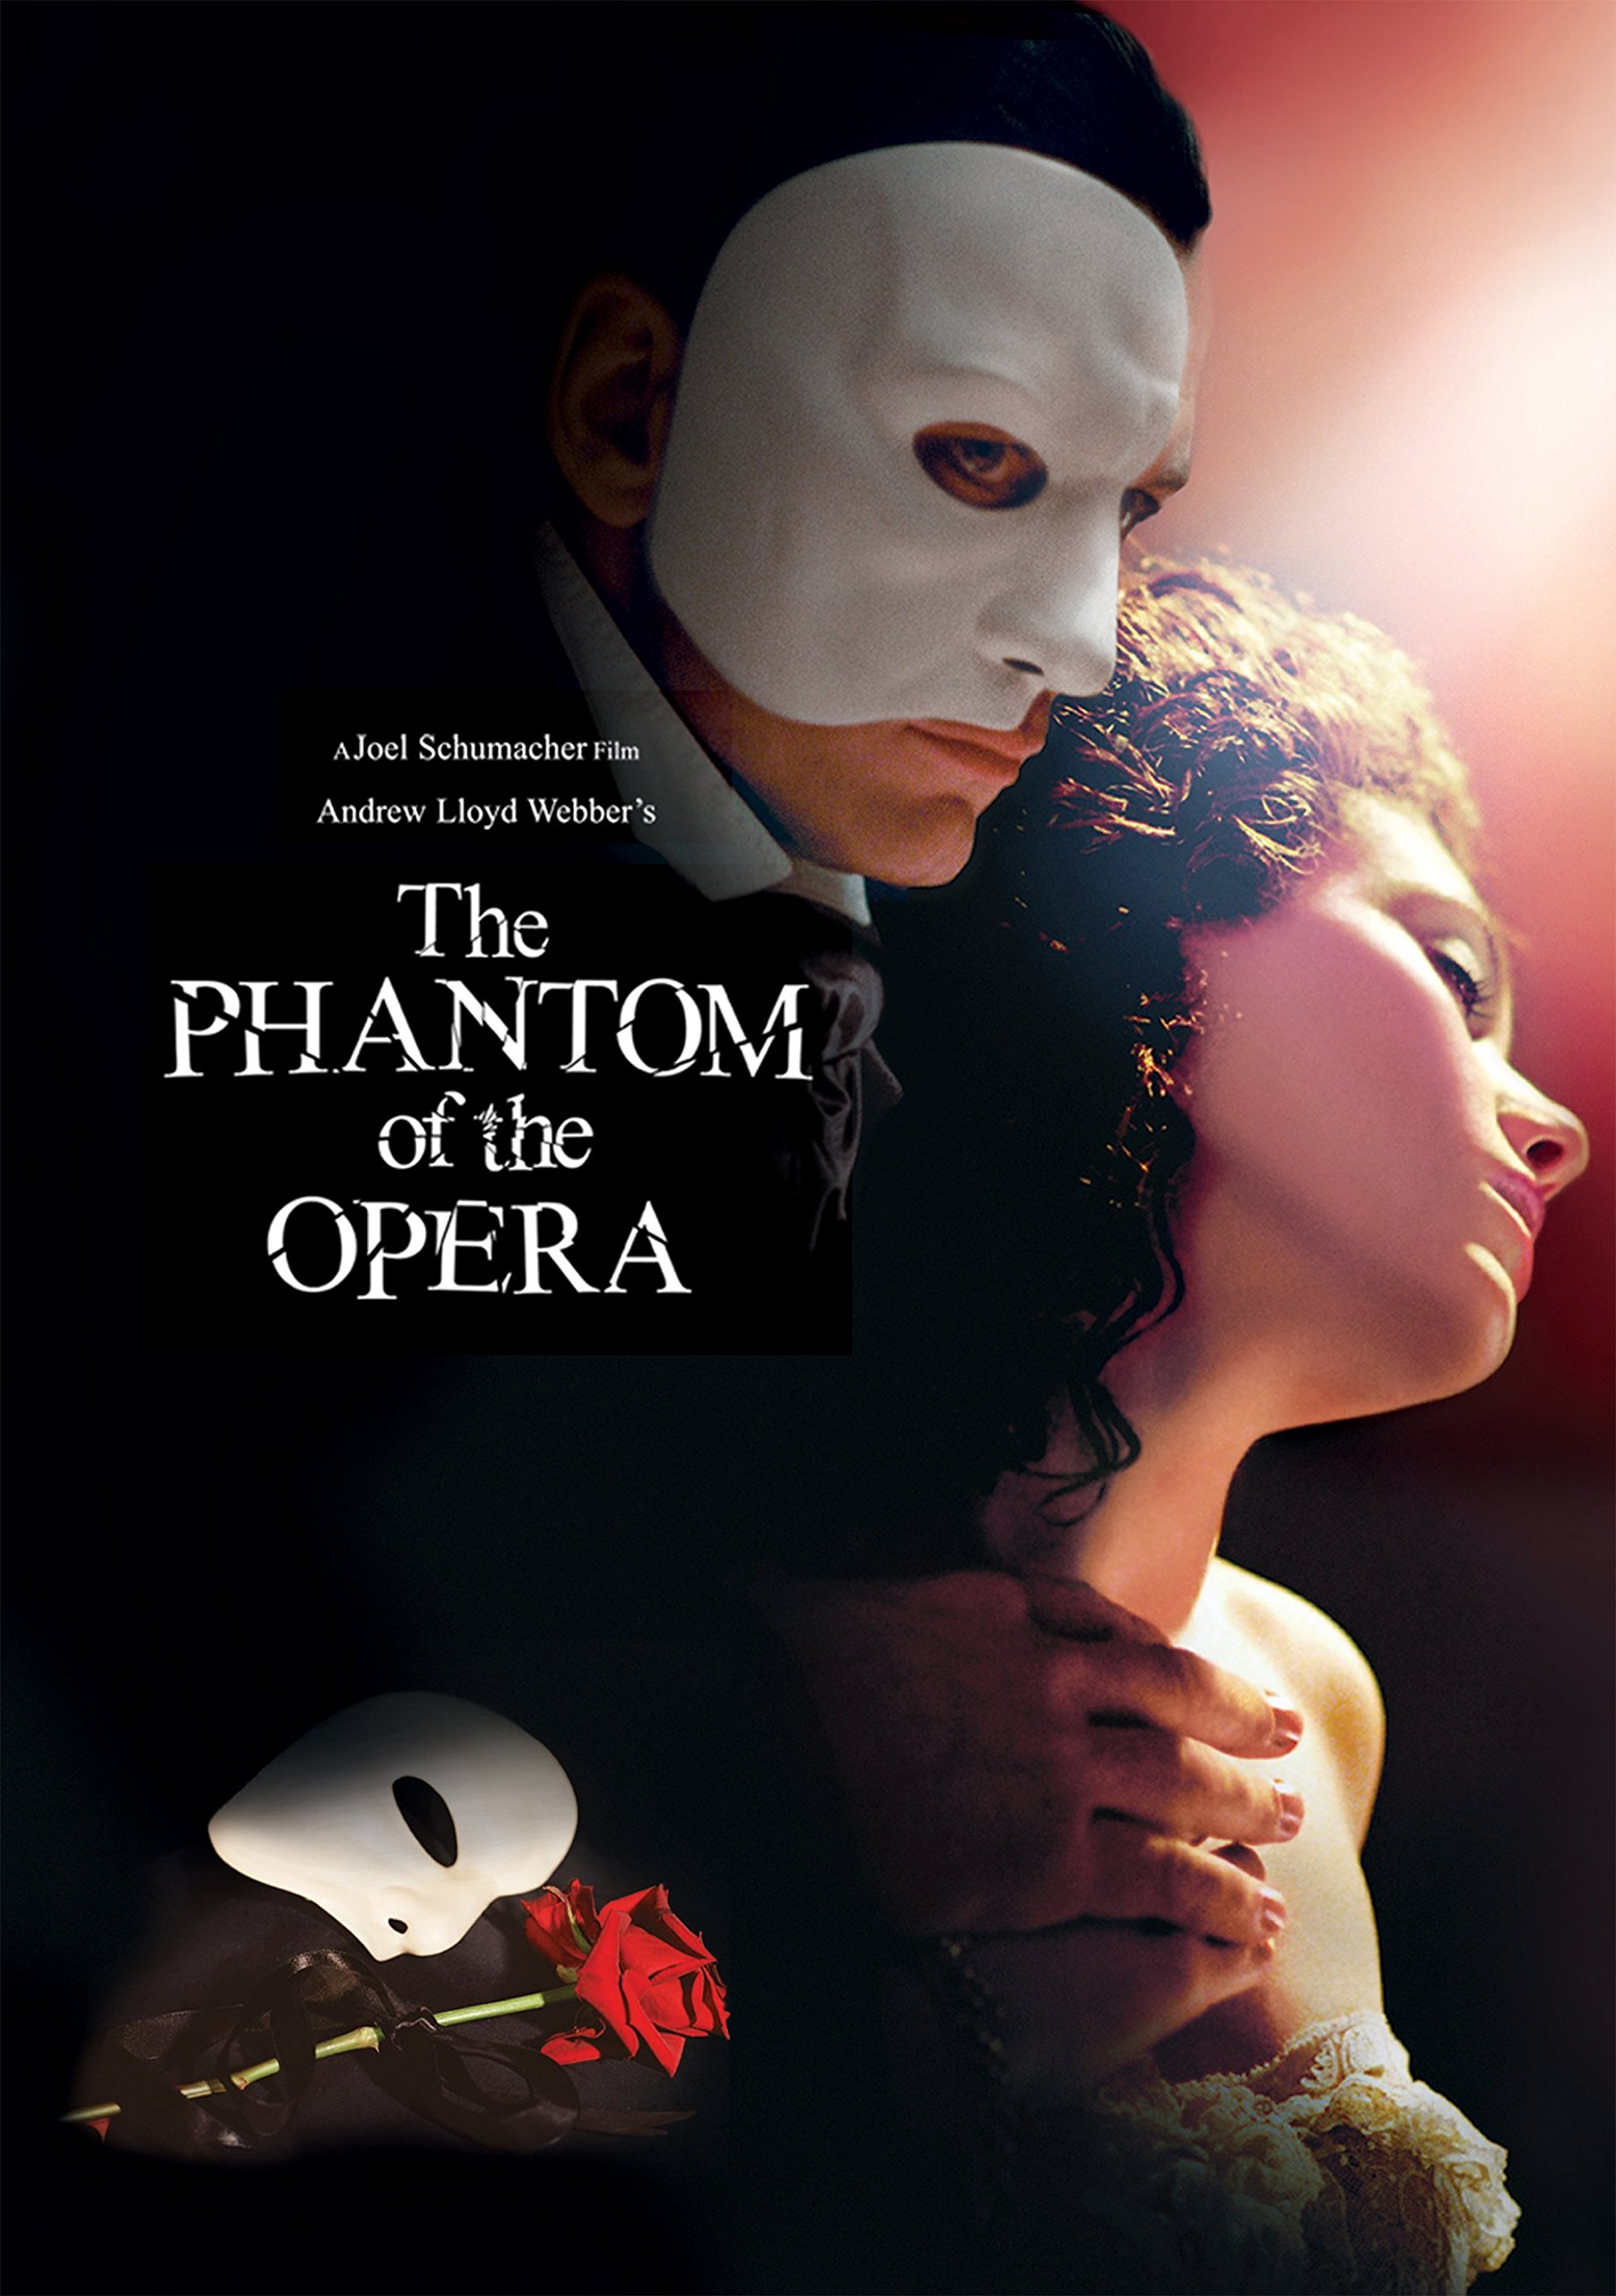 The Phantom of the Opera (2004) by